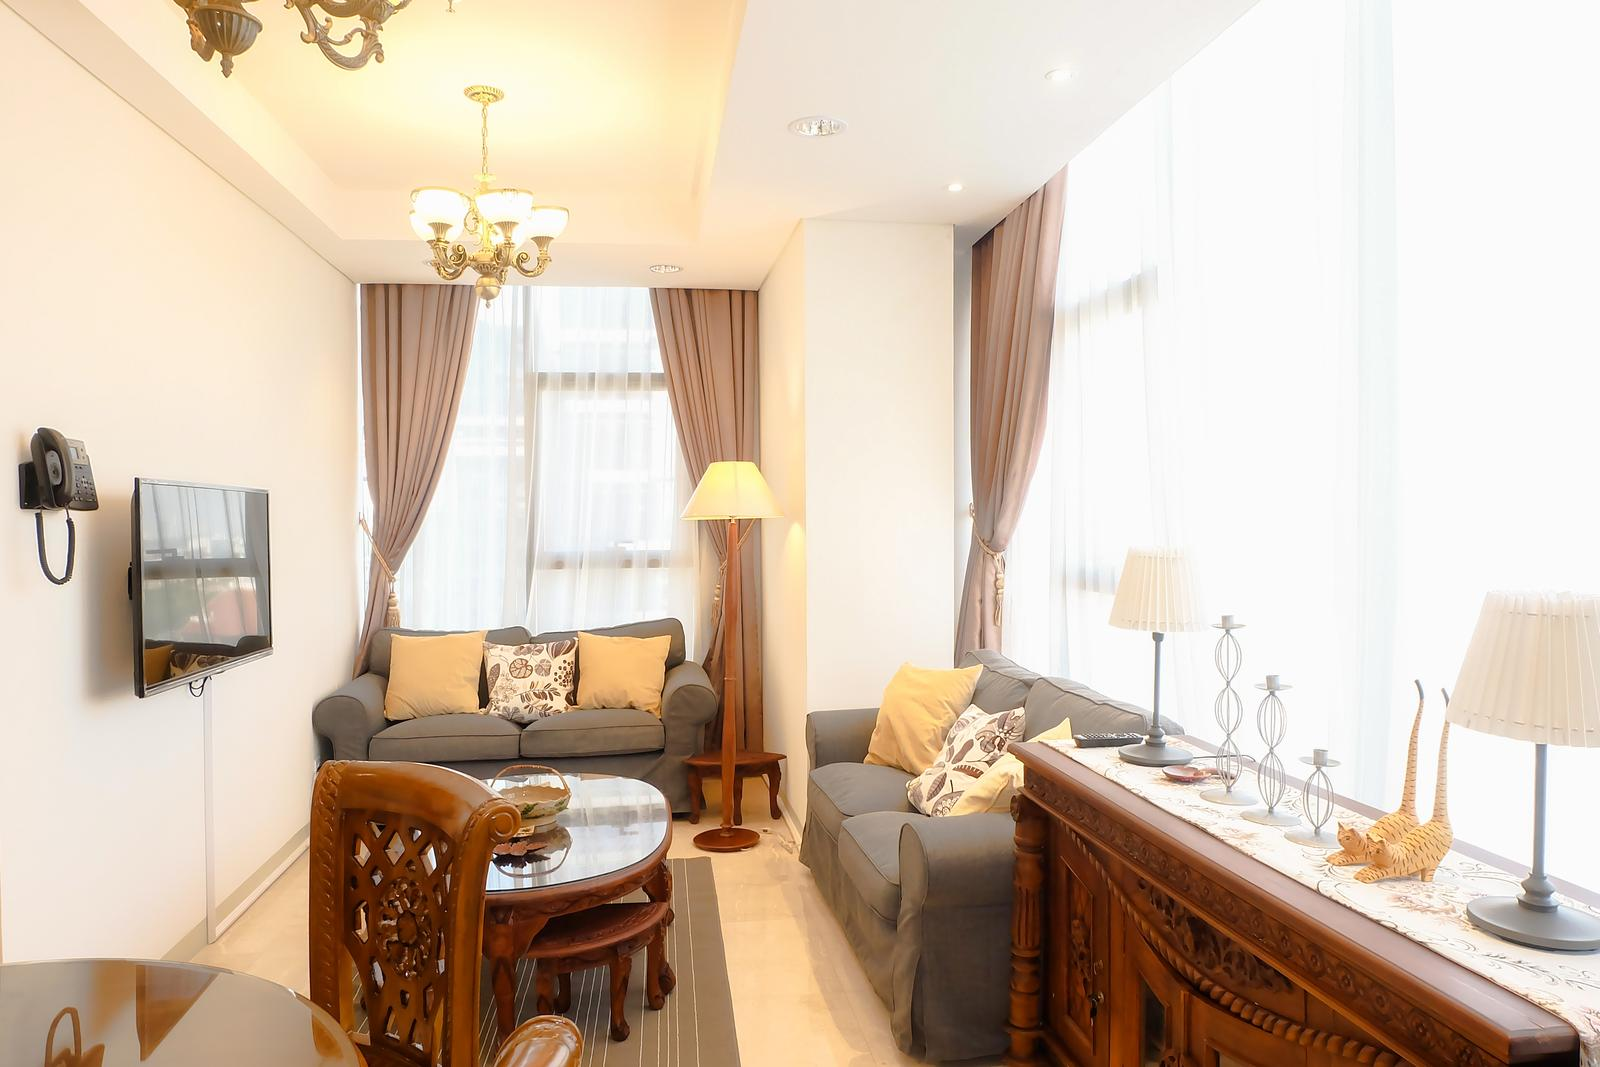 Lavenue Apartemen Pancoran - Comfy 2BR L'Avenue Apartment By Travelio